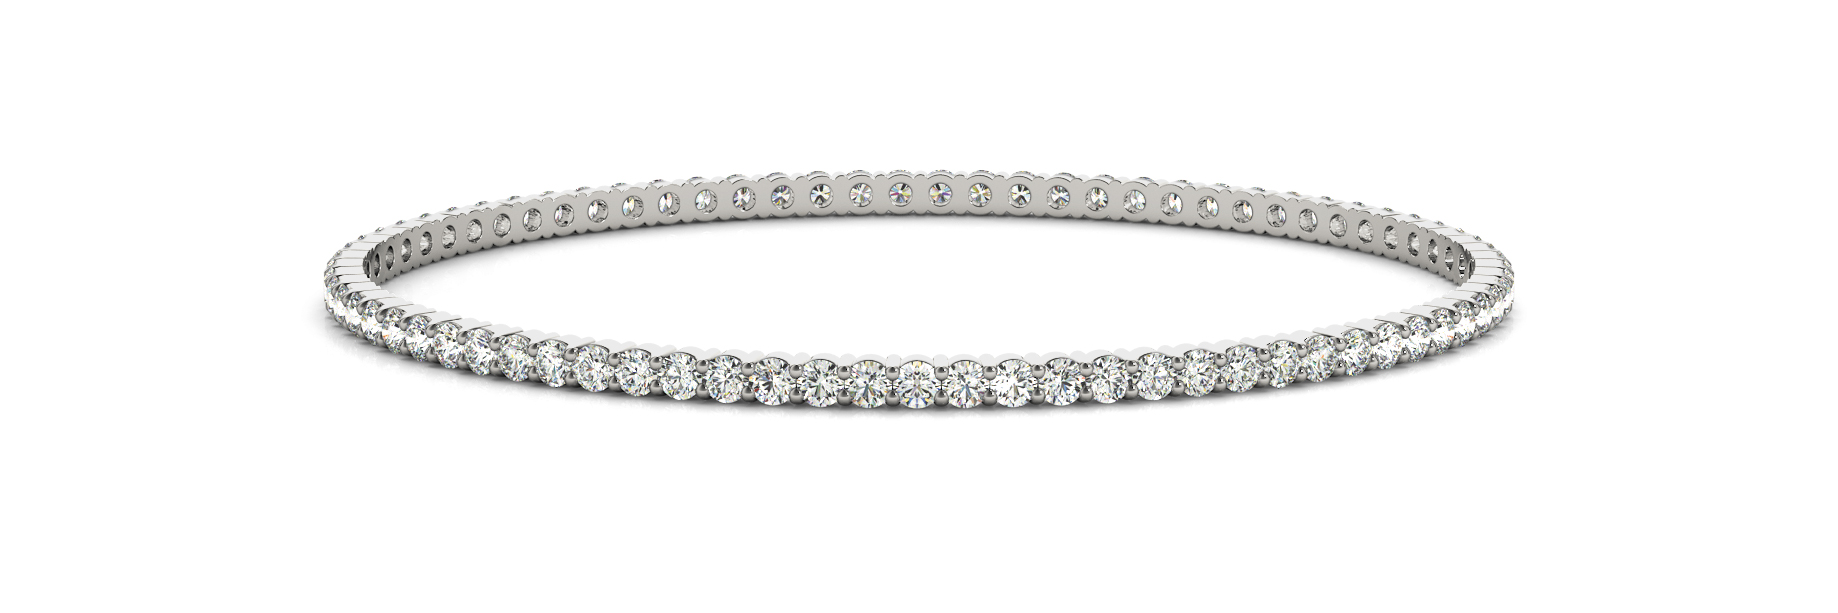 1.14 Carat Round Diamond Eternity Bangle in White Gold